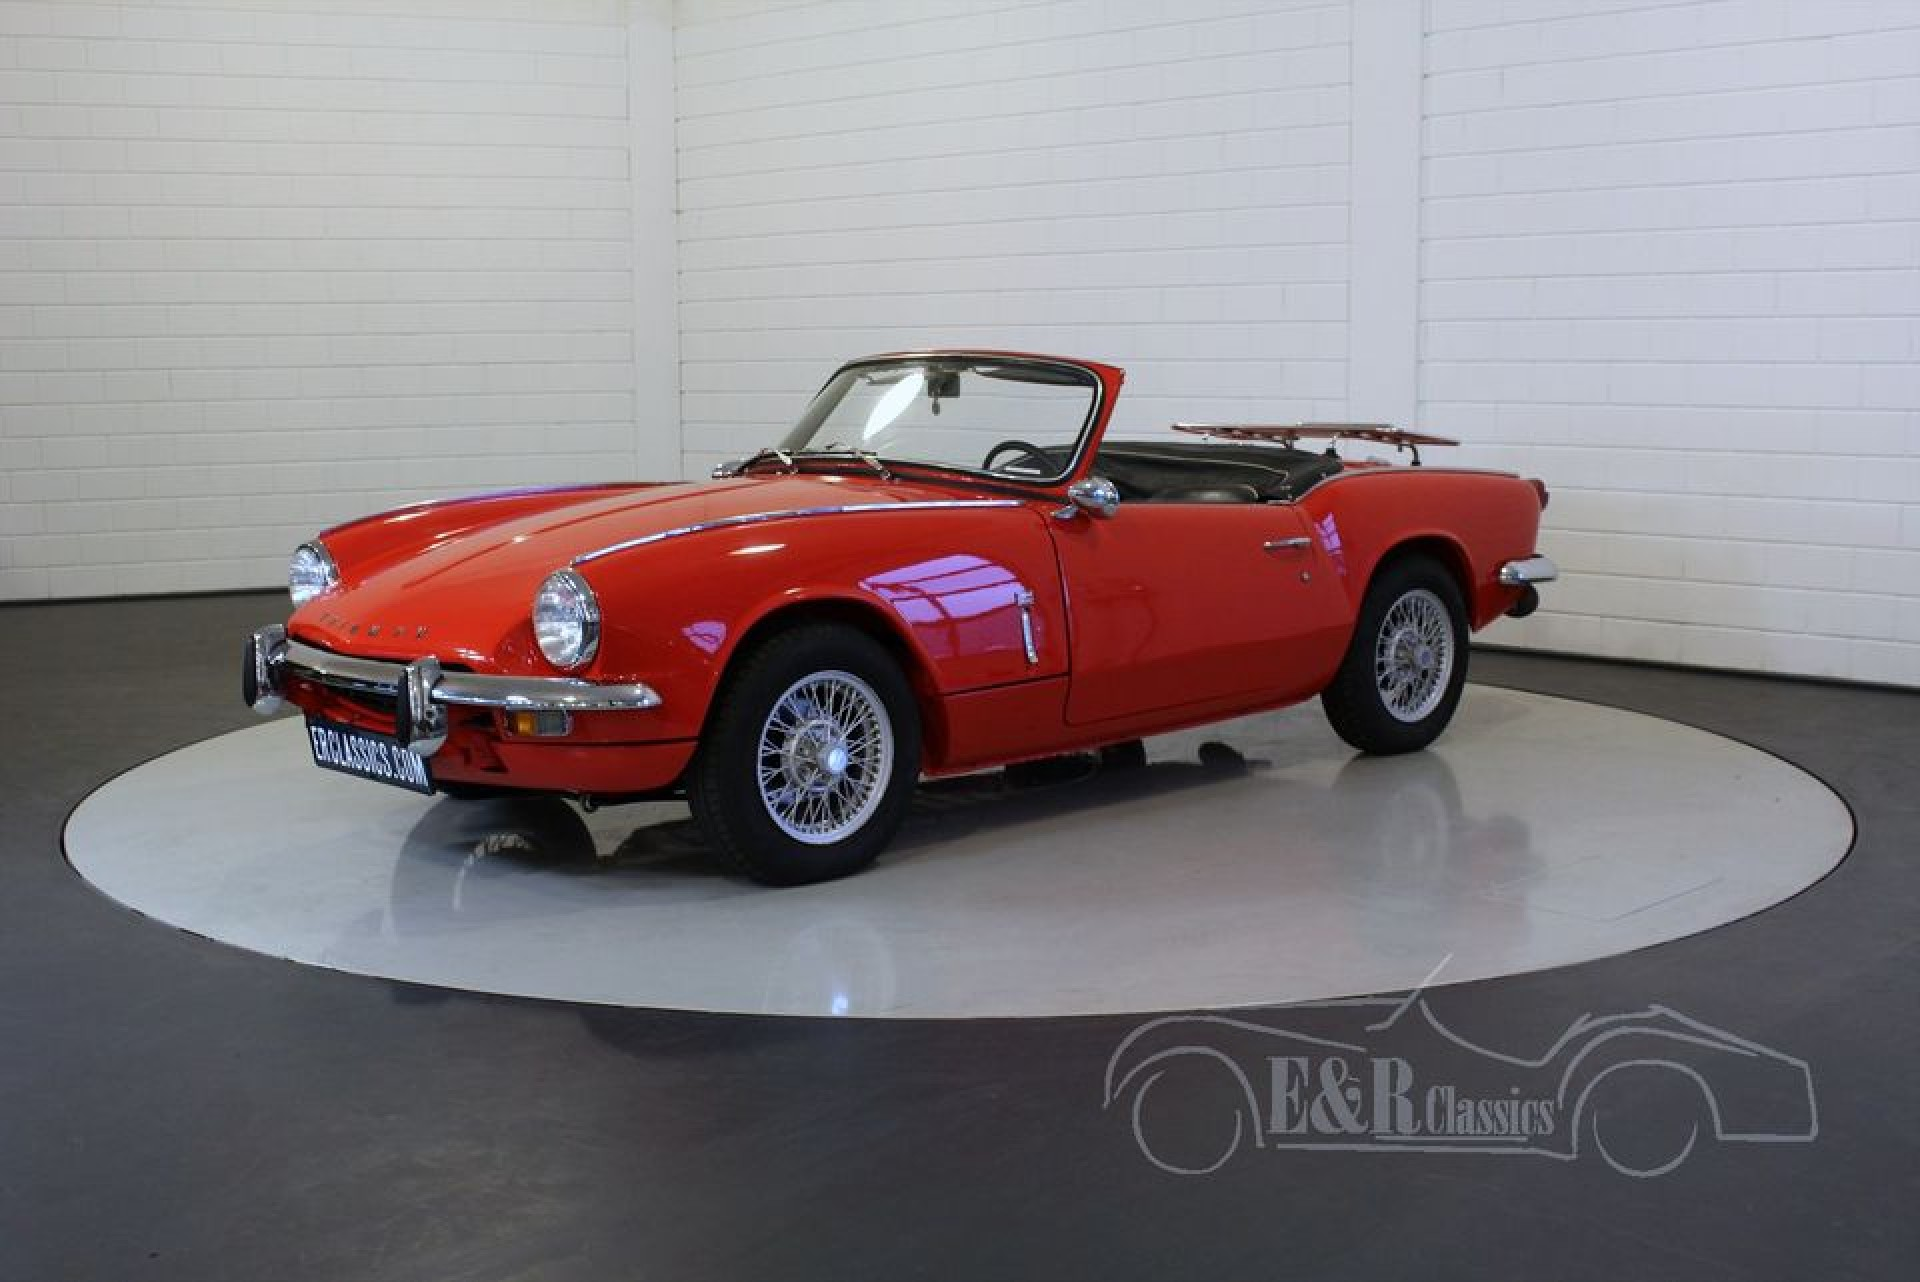 triumph spitfire mk3 cabriolet 1967 for sale at erclassics. Black Bedroom Furniture Sets. Home Design Ideas